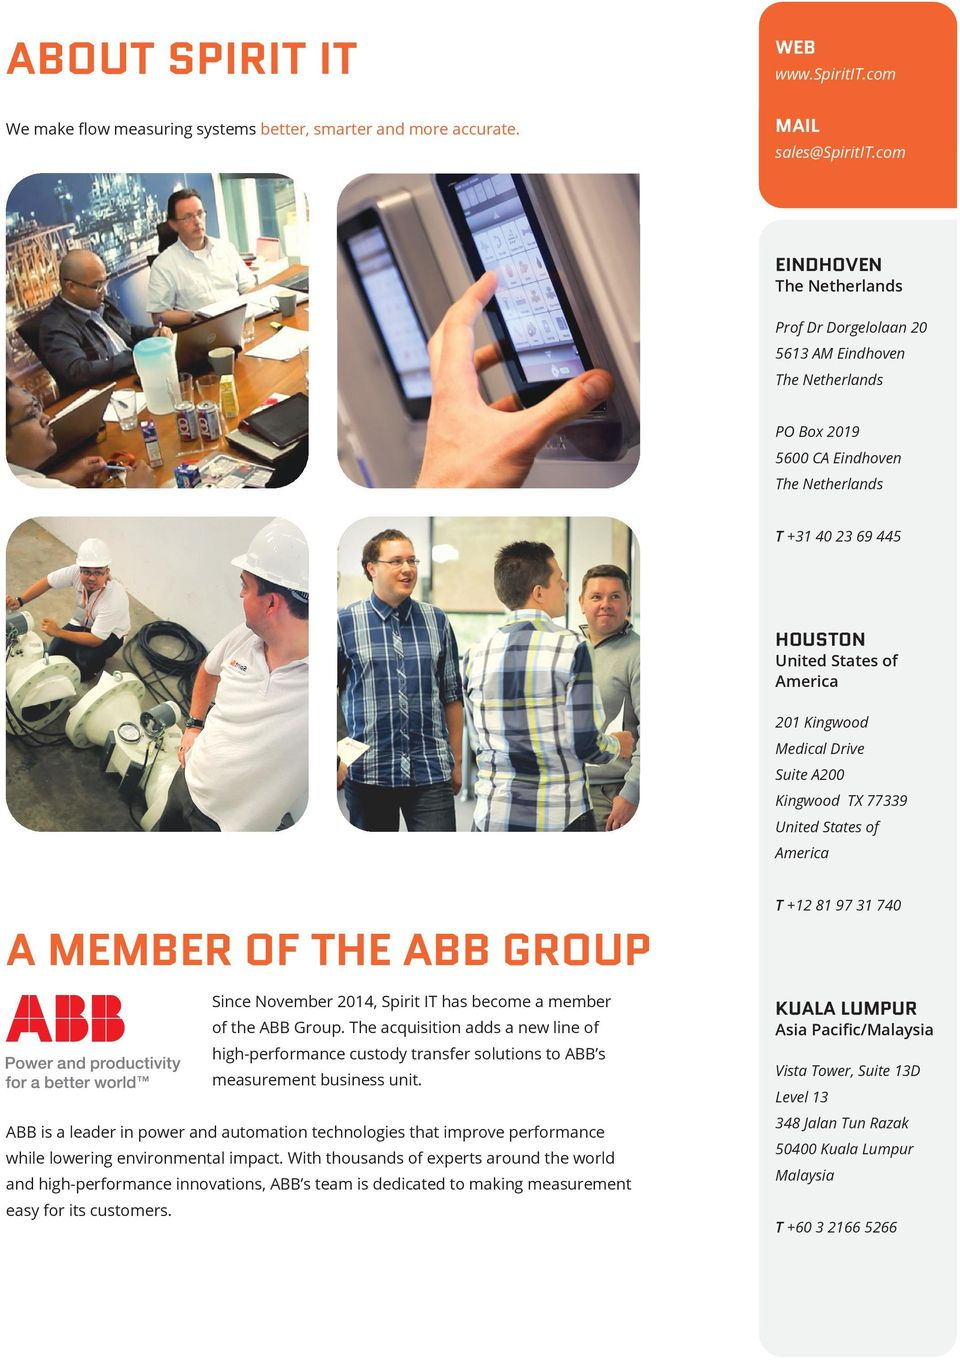 Medical Drive Suite A200 Kingwood TX 77339 United States of America A MEMBER OF THE ABB GROUP Since November 2014, Spirit IT has become a member of the ABB Group.